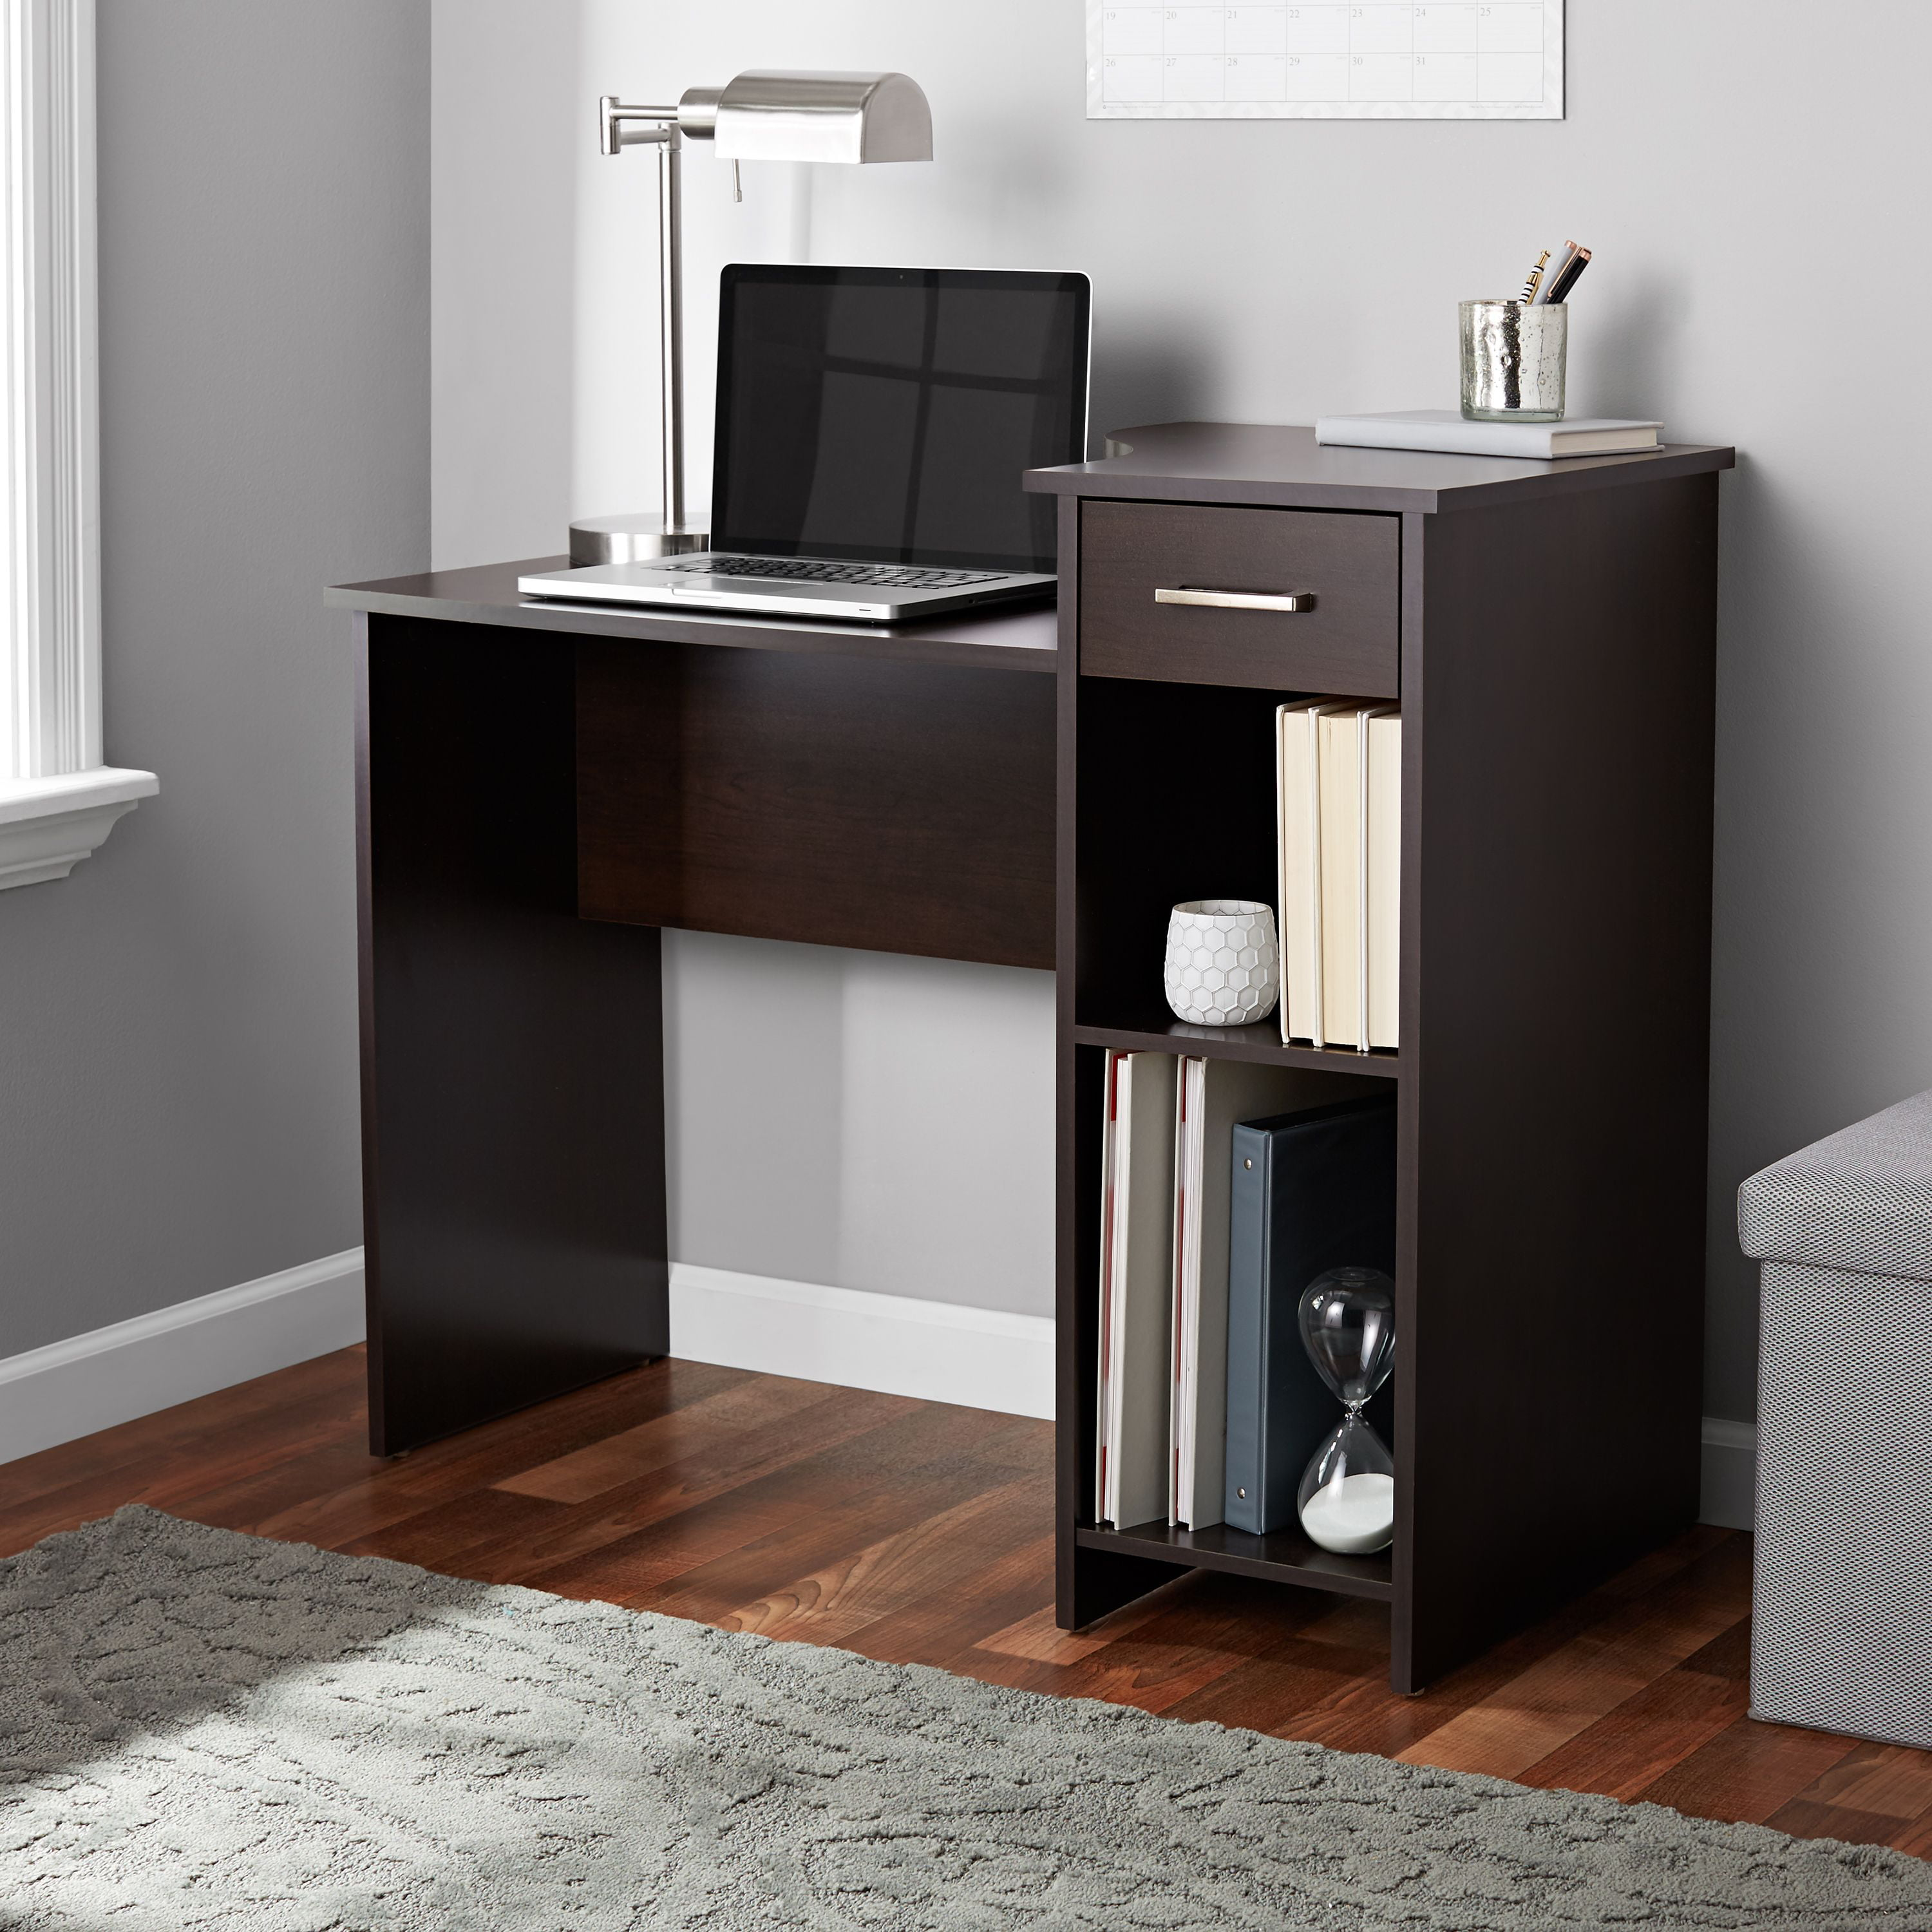 Mainstays Student Desk With Easy-glide Drawer, Cinnamon